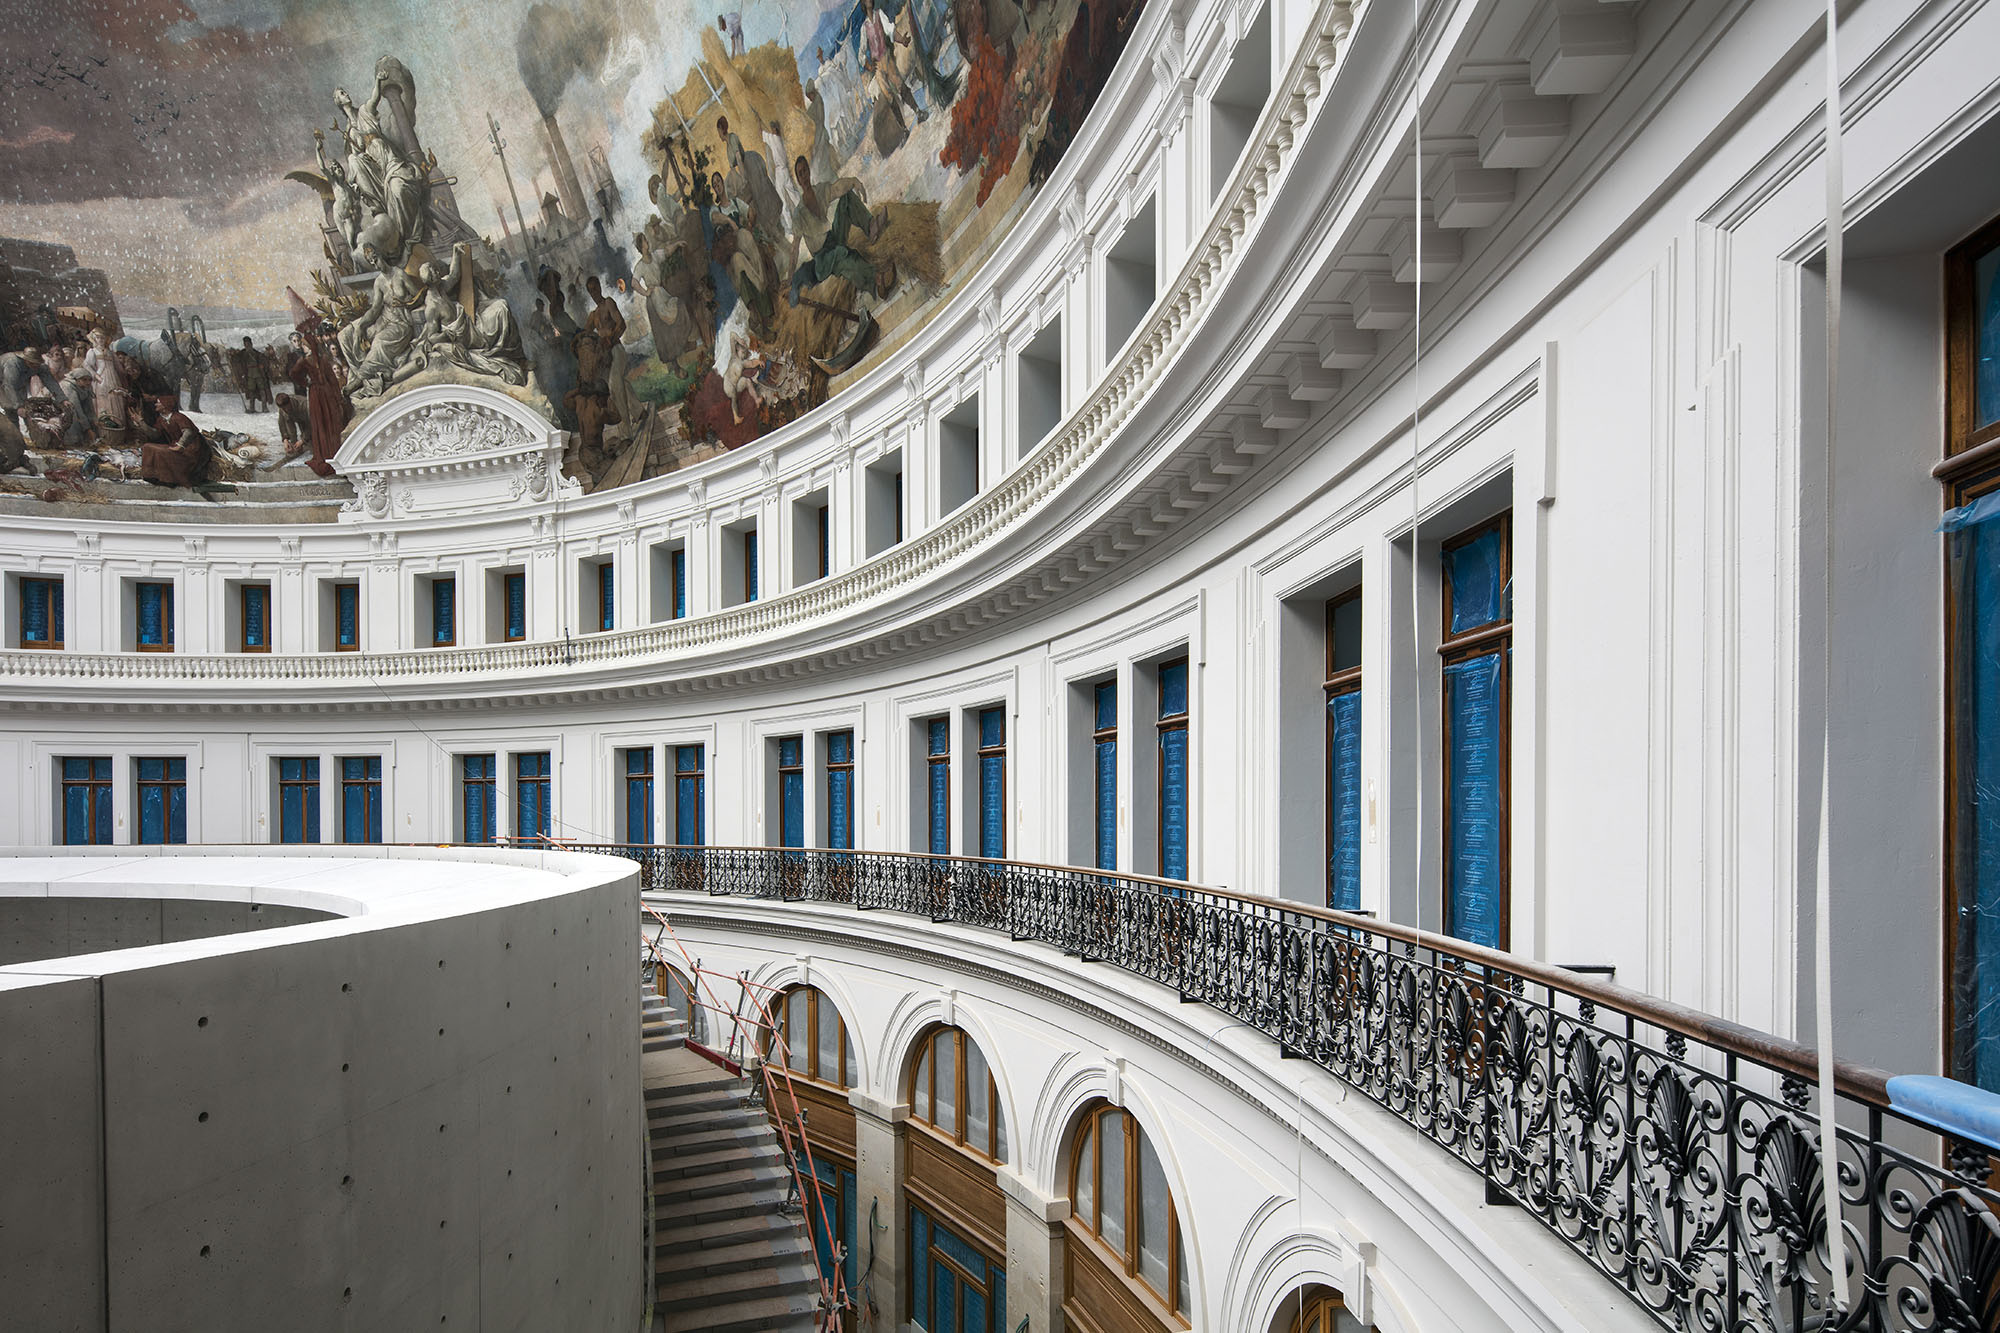 curved space with painted ceiling inside the Bourse de Commerce